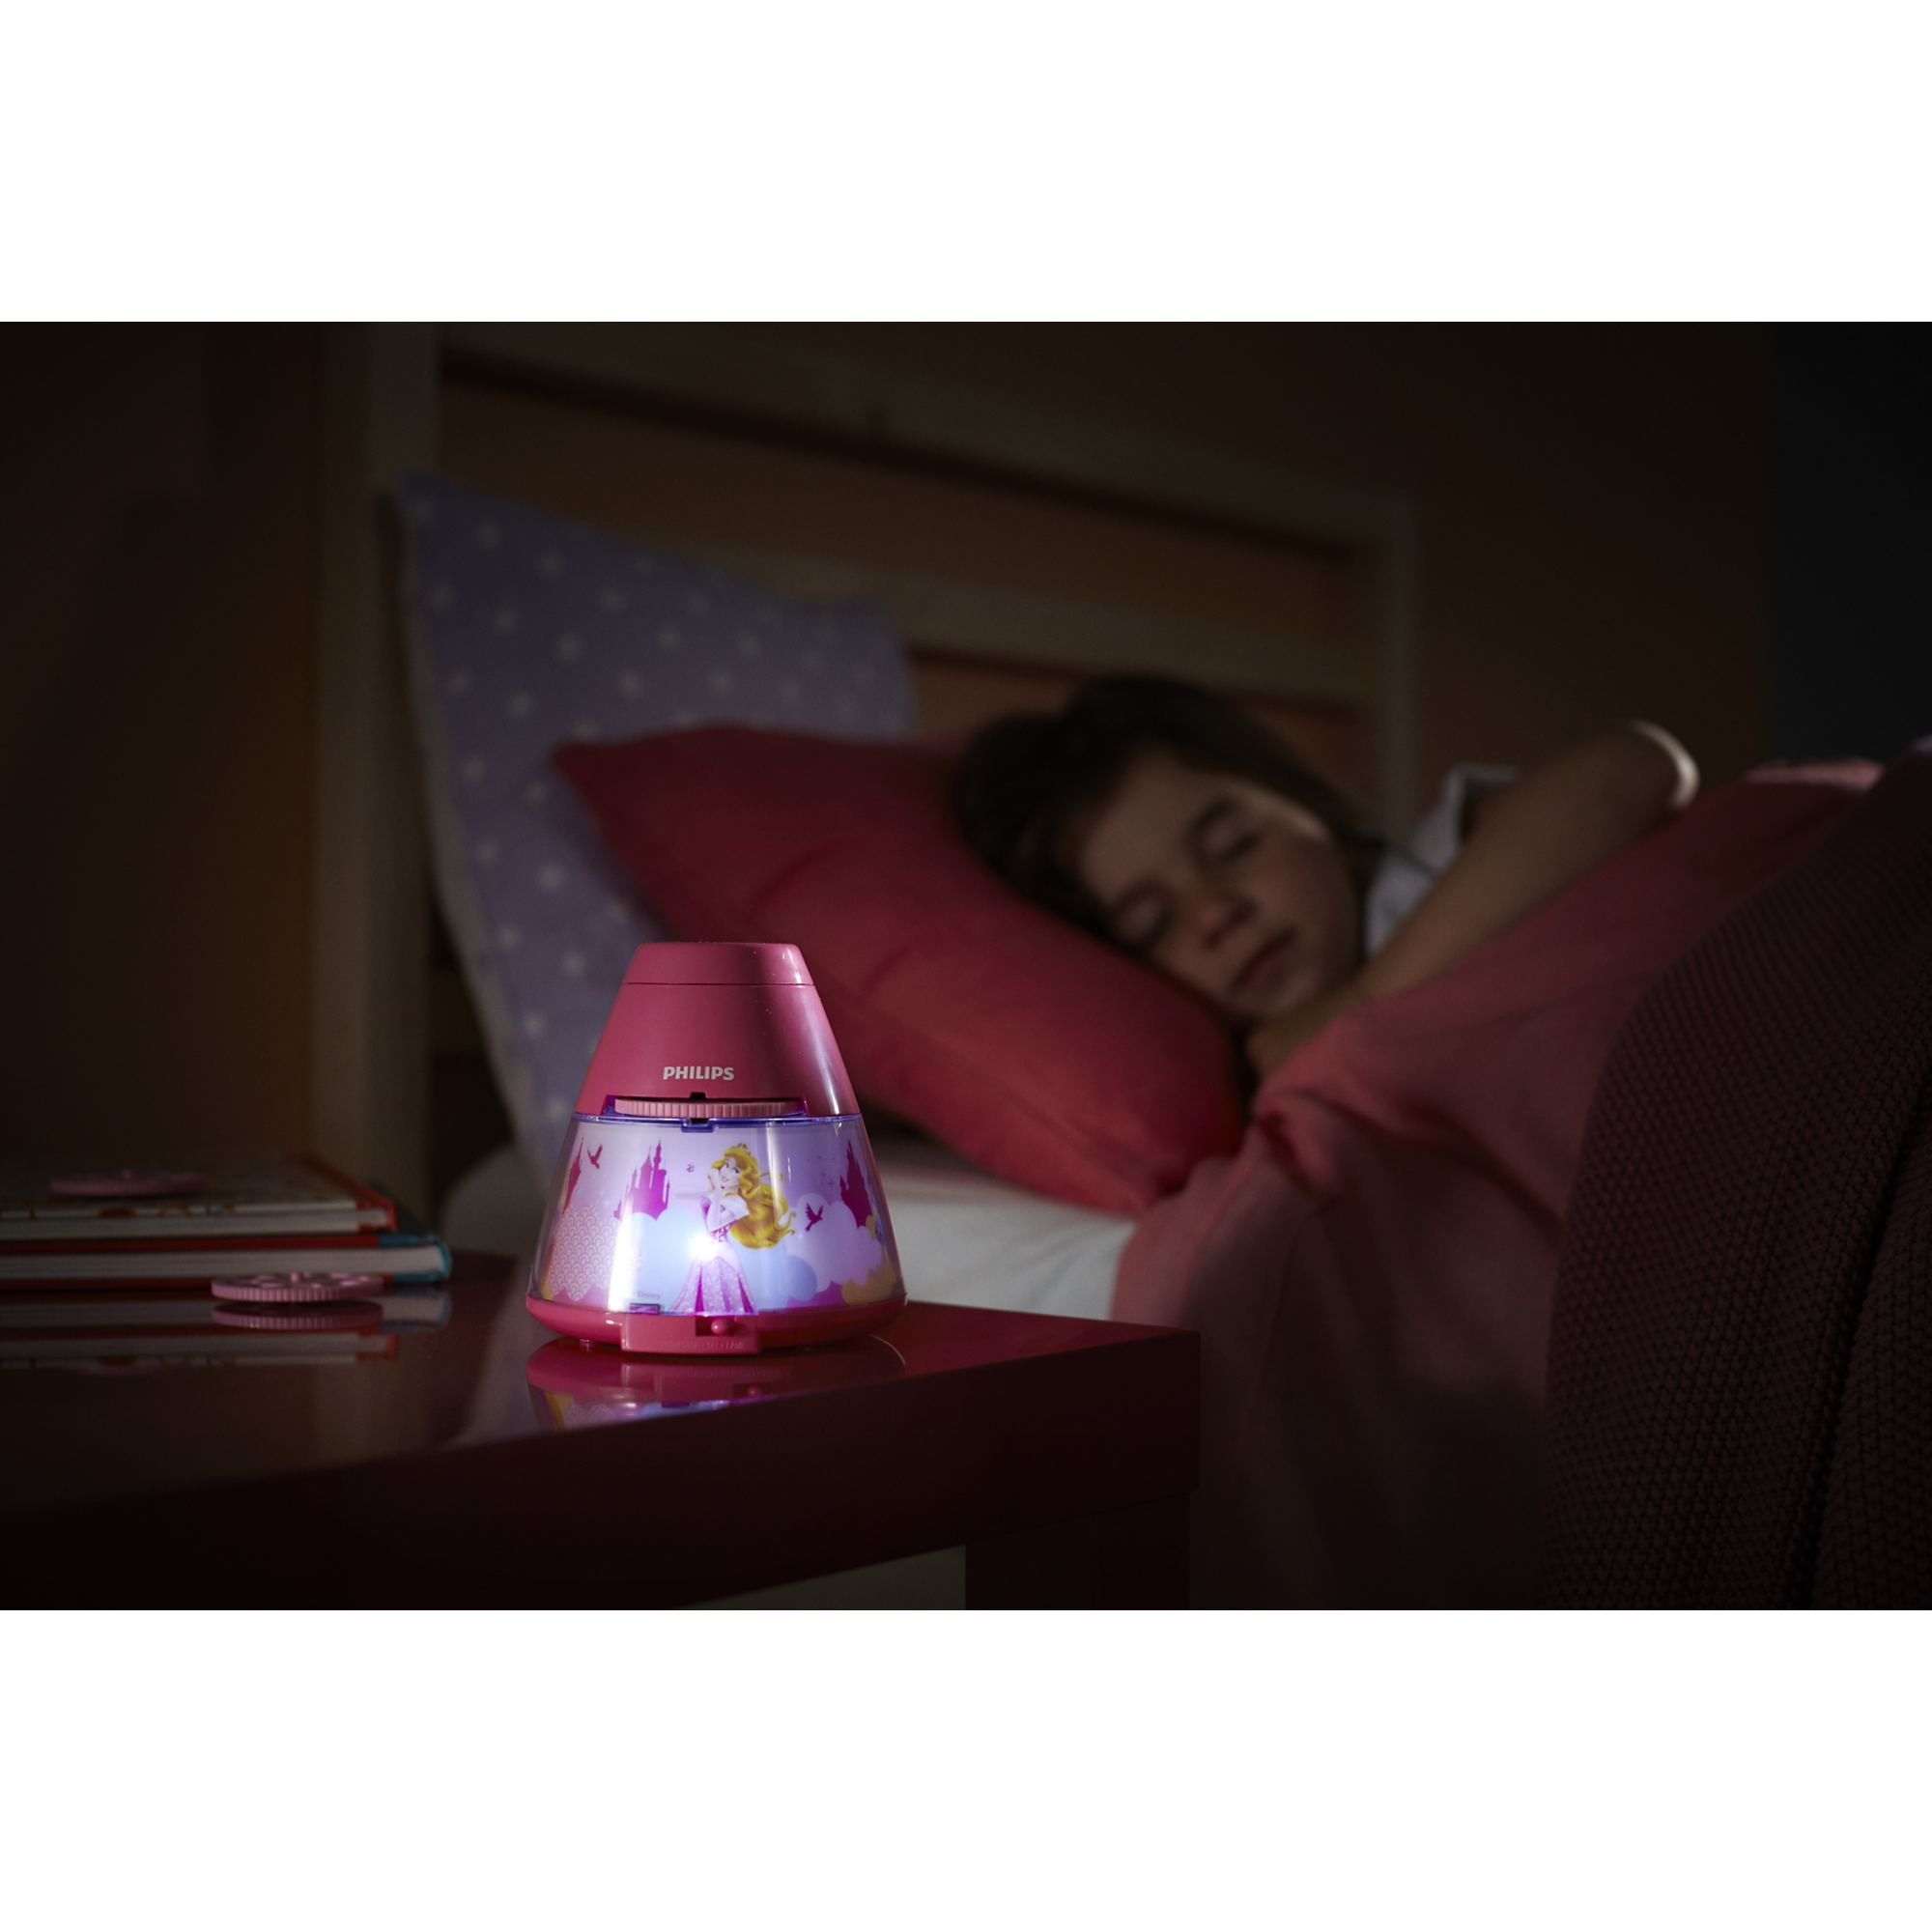 Philips Disney Princess children's LED night light projector portable battery Thumbnail 3